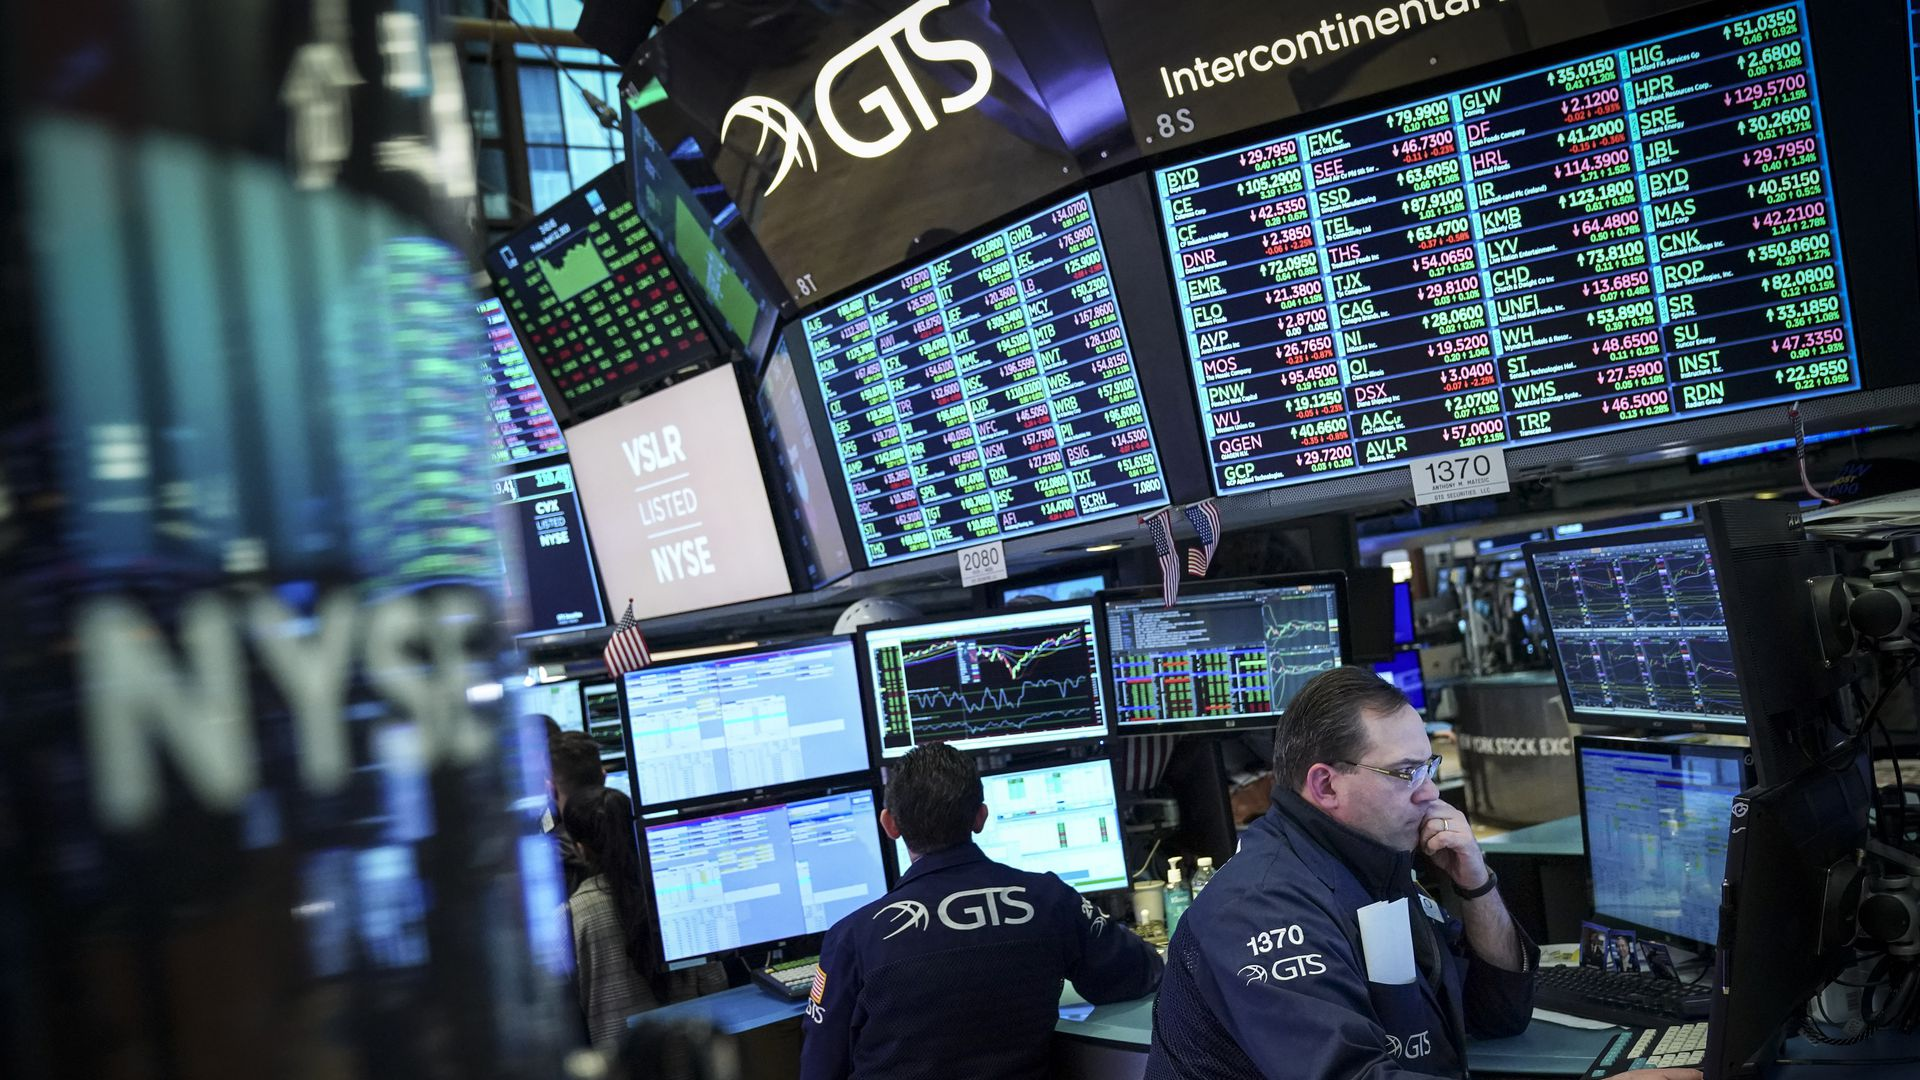 Global stocks trade firmly higher on hopes of near-term interest rates cuts